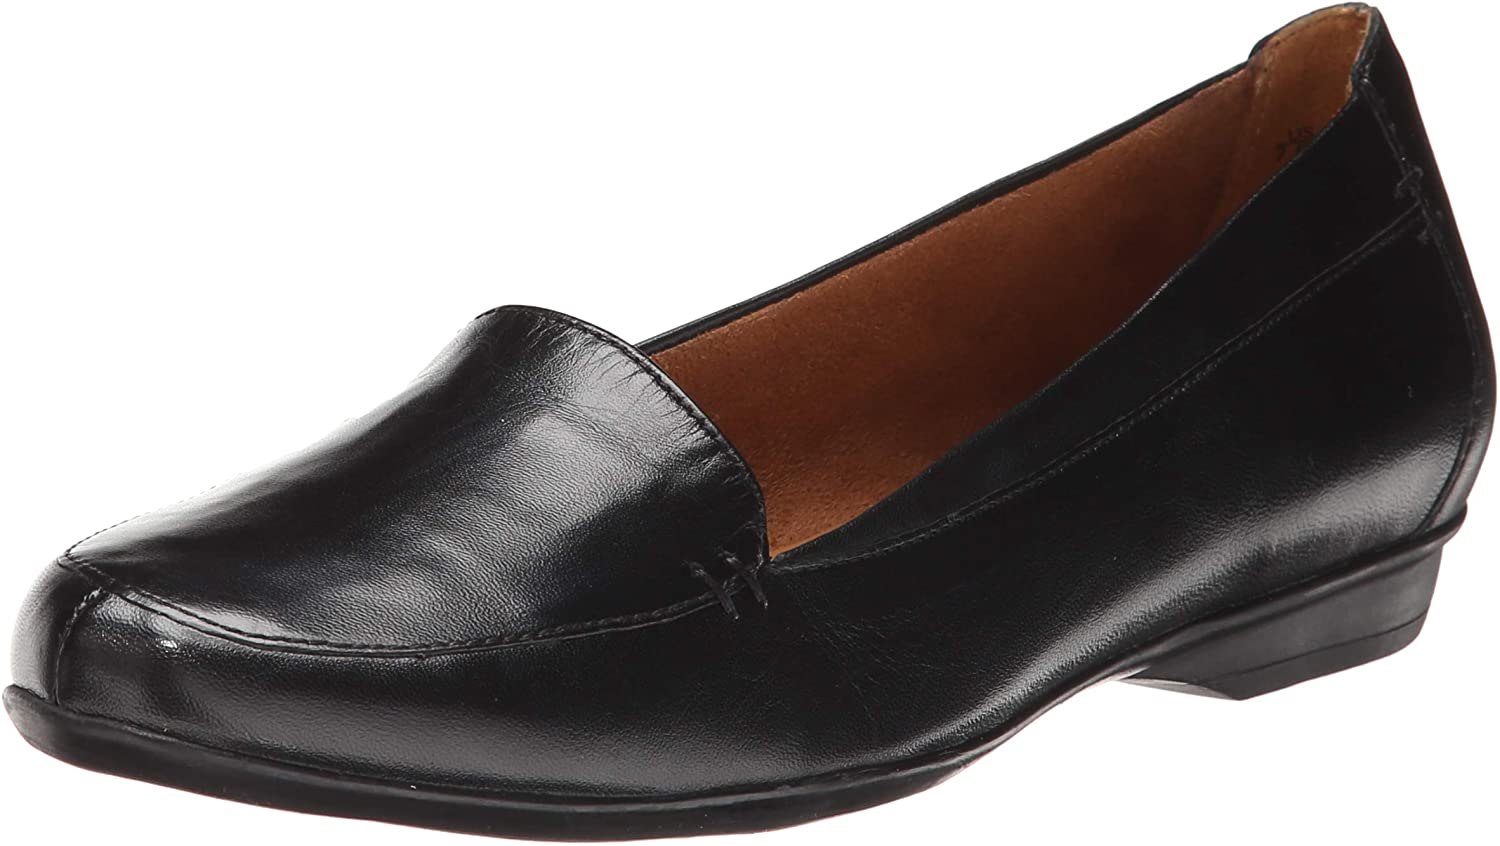 Max 48% OFF Naturalizer Choice Women's Saban Loafer Slip-On